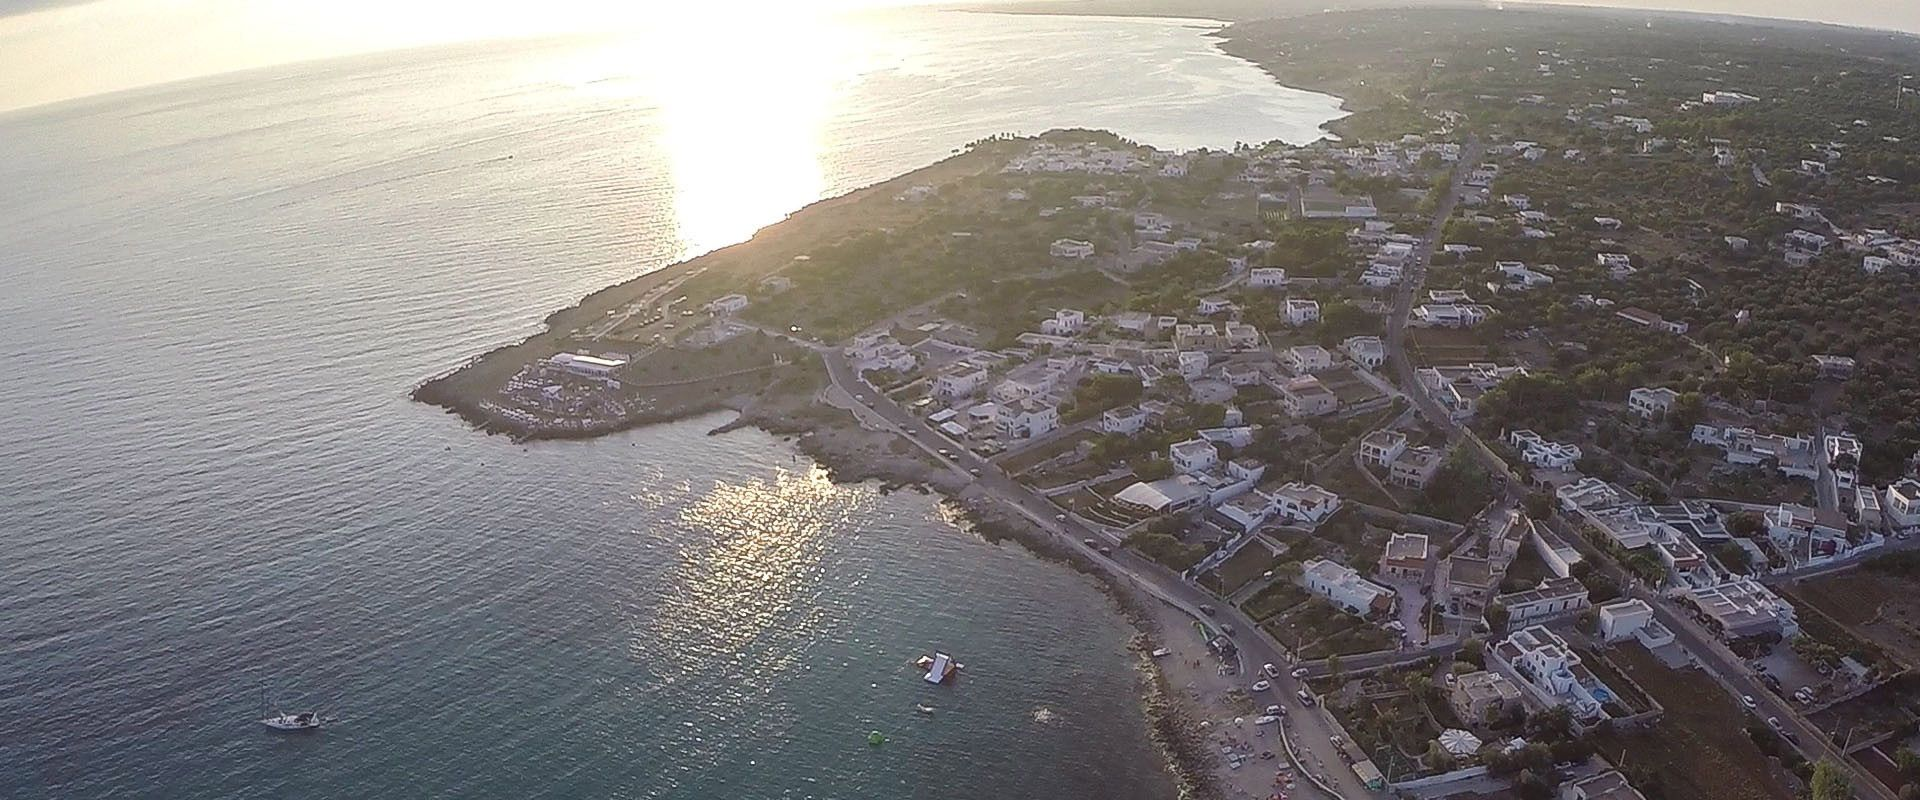 Camping in Salento